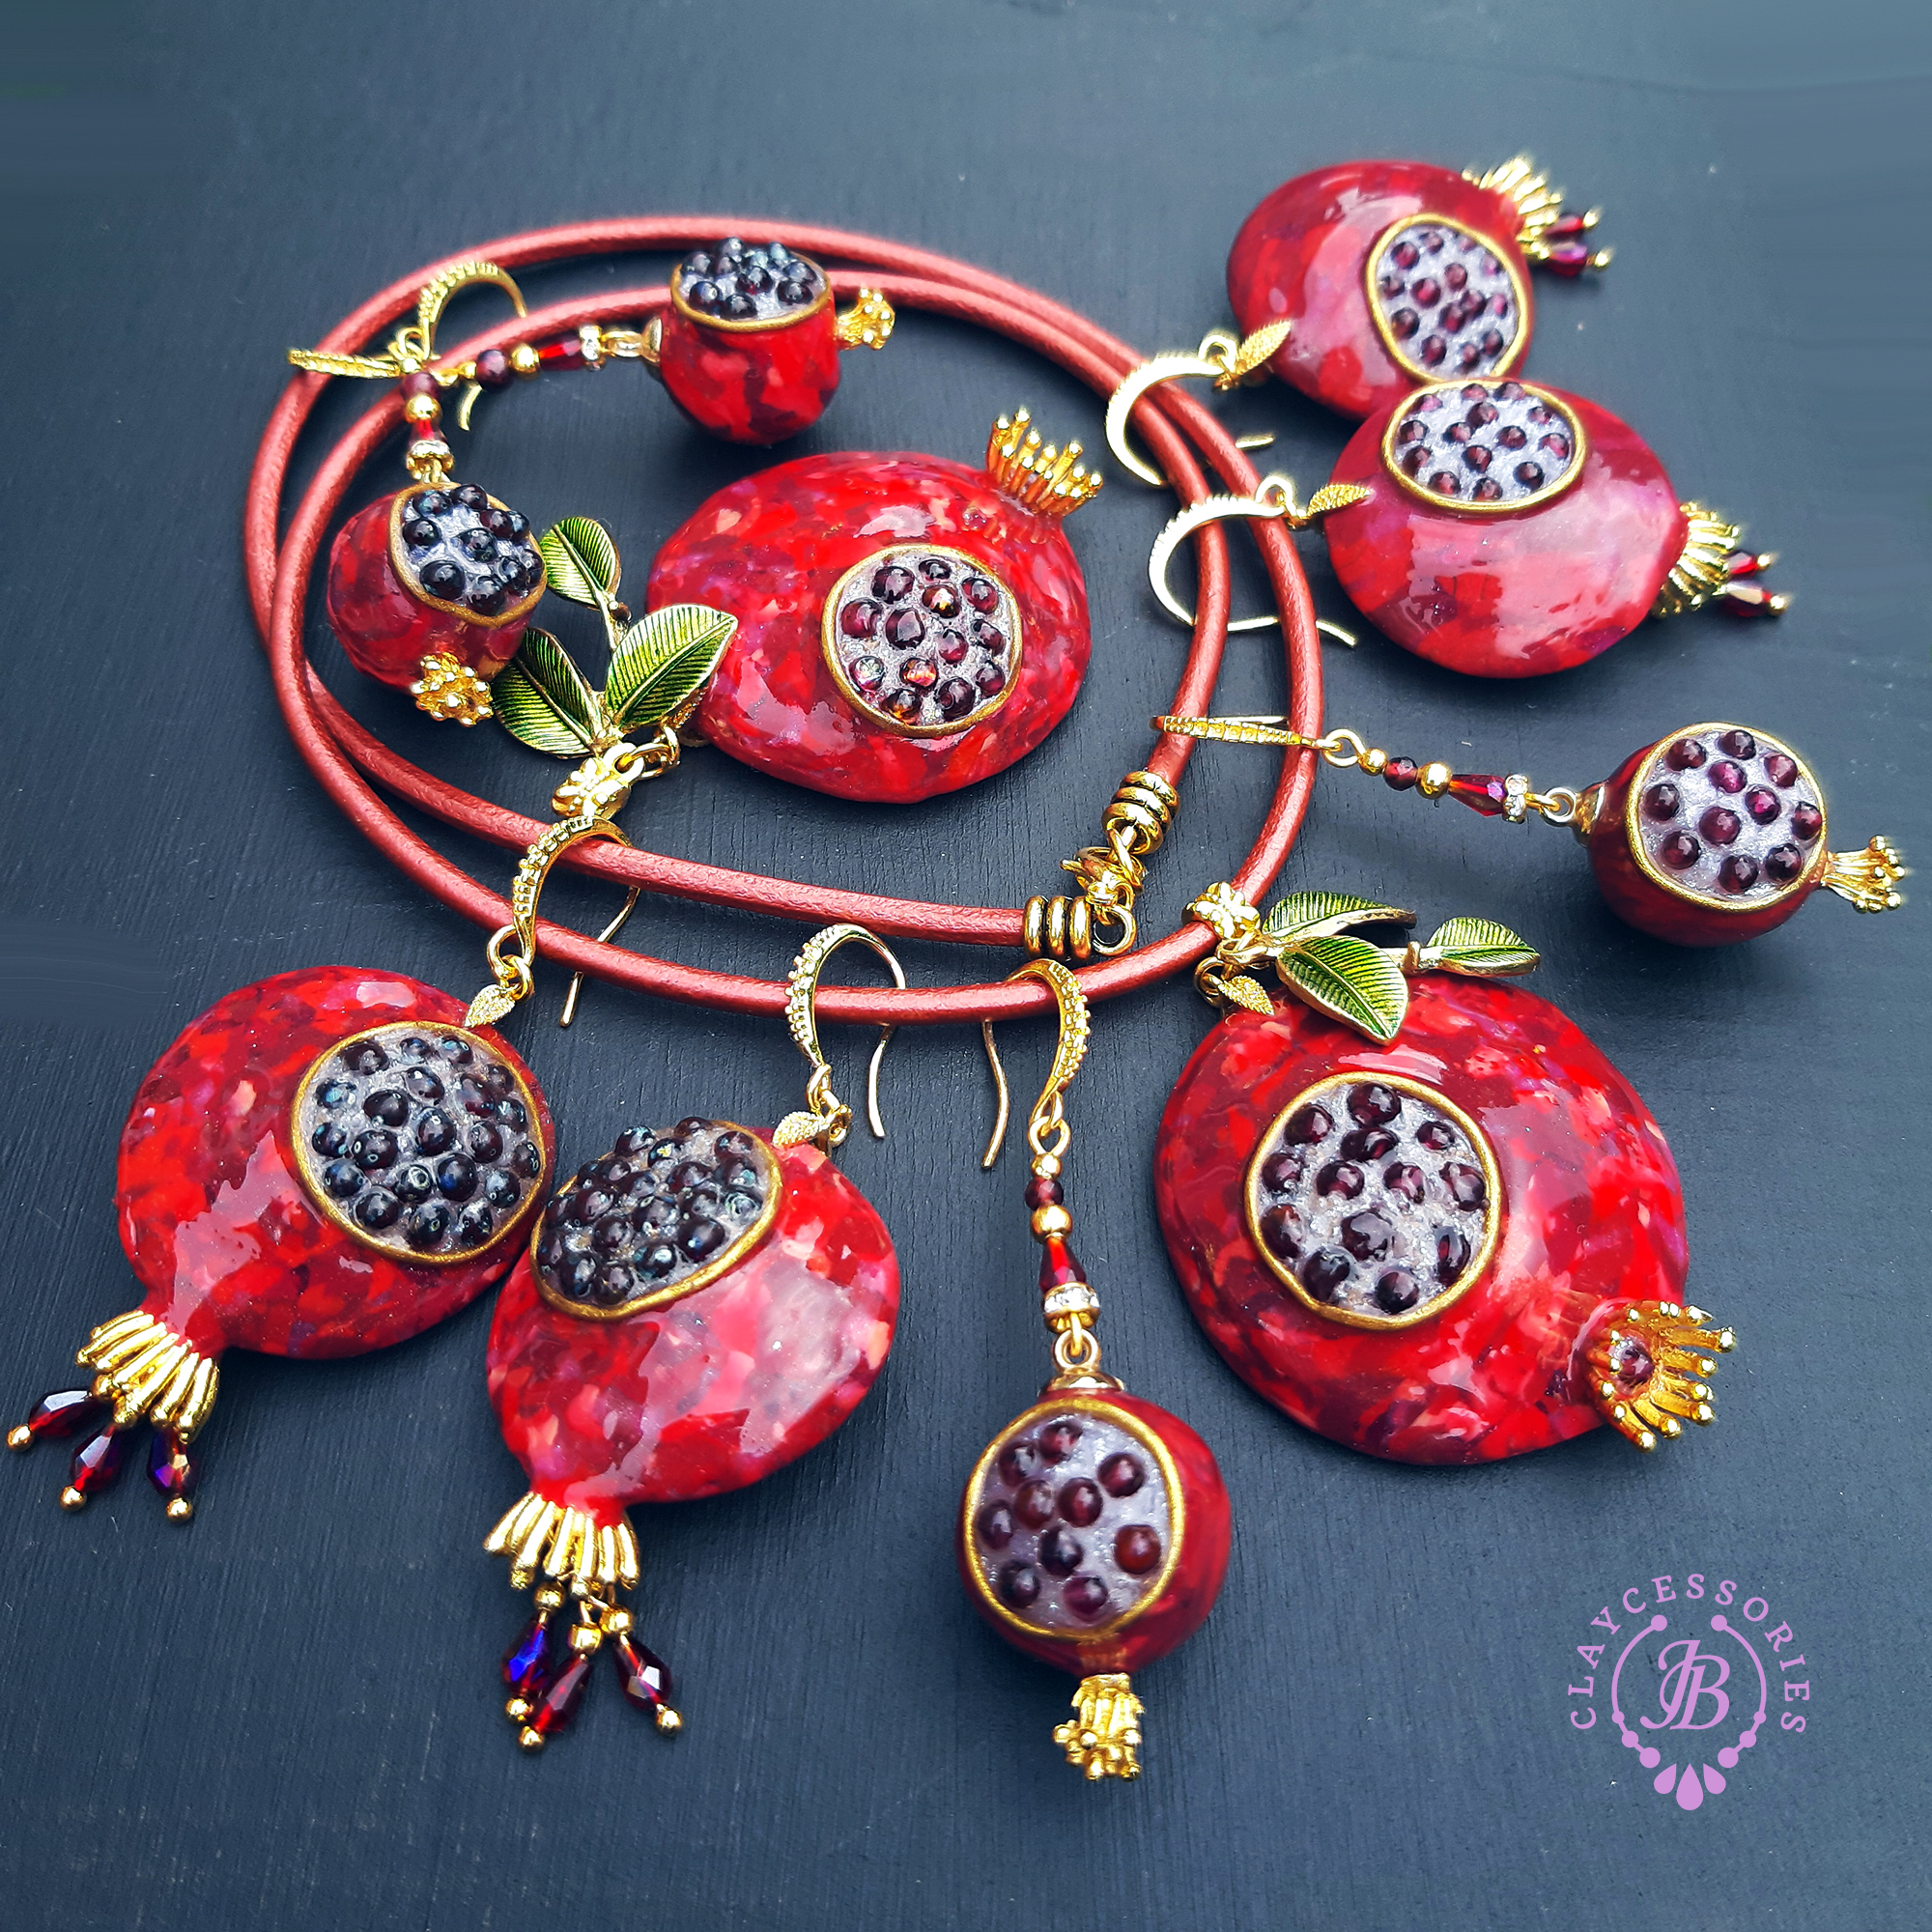 The Unusual Design Of Pomegranate Jewelry I Made Out Of Polymer Clay.